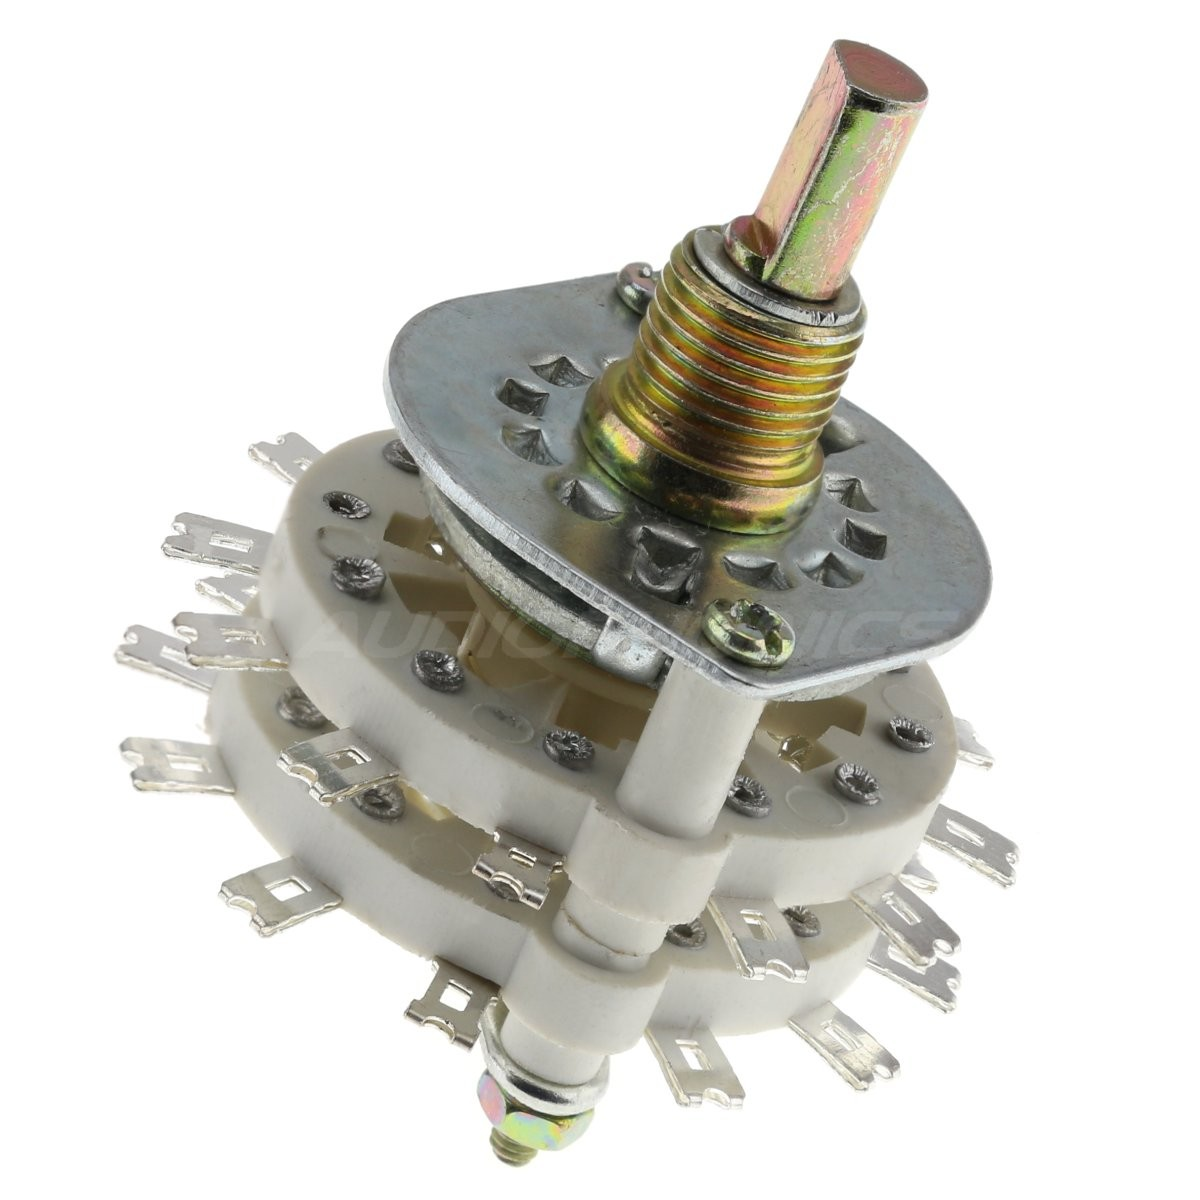 Selector 3 inputs 2 positions Ø6mm flat axis